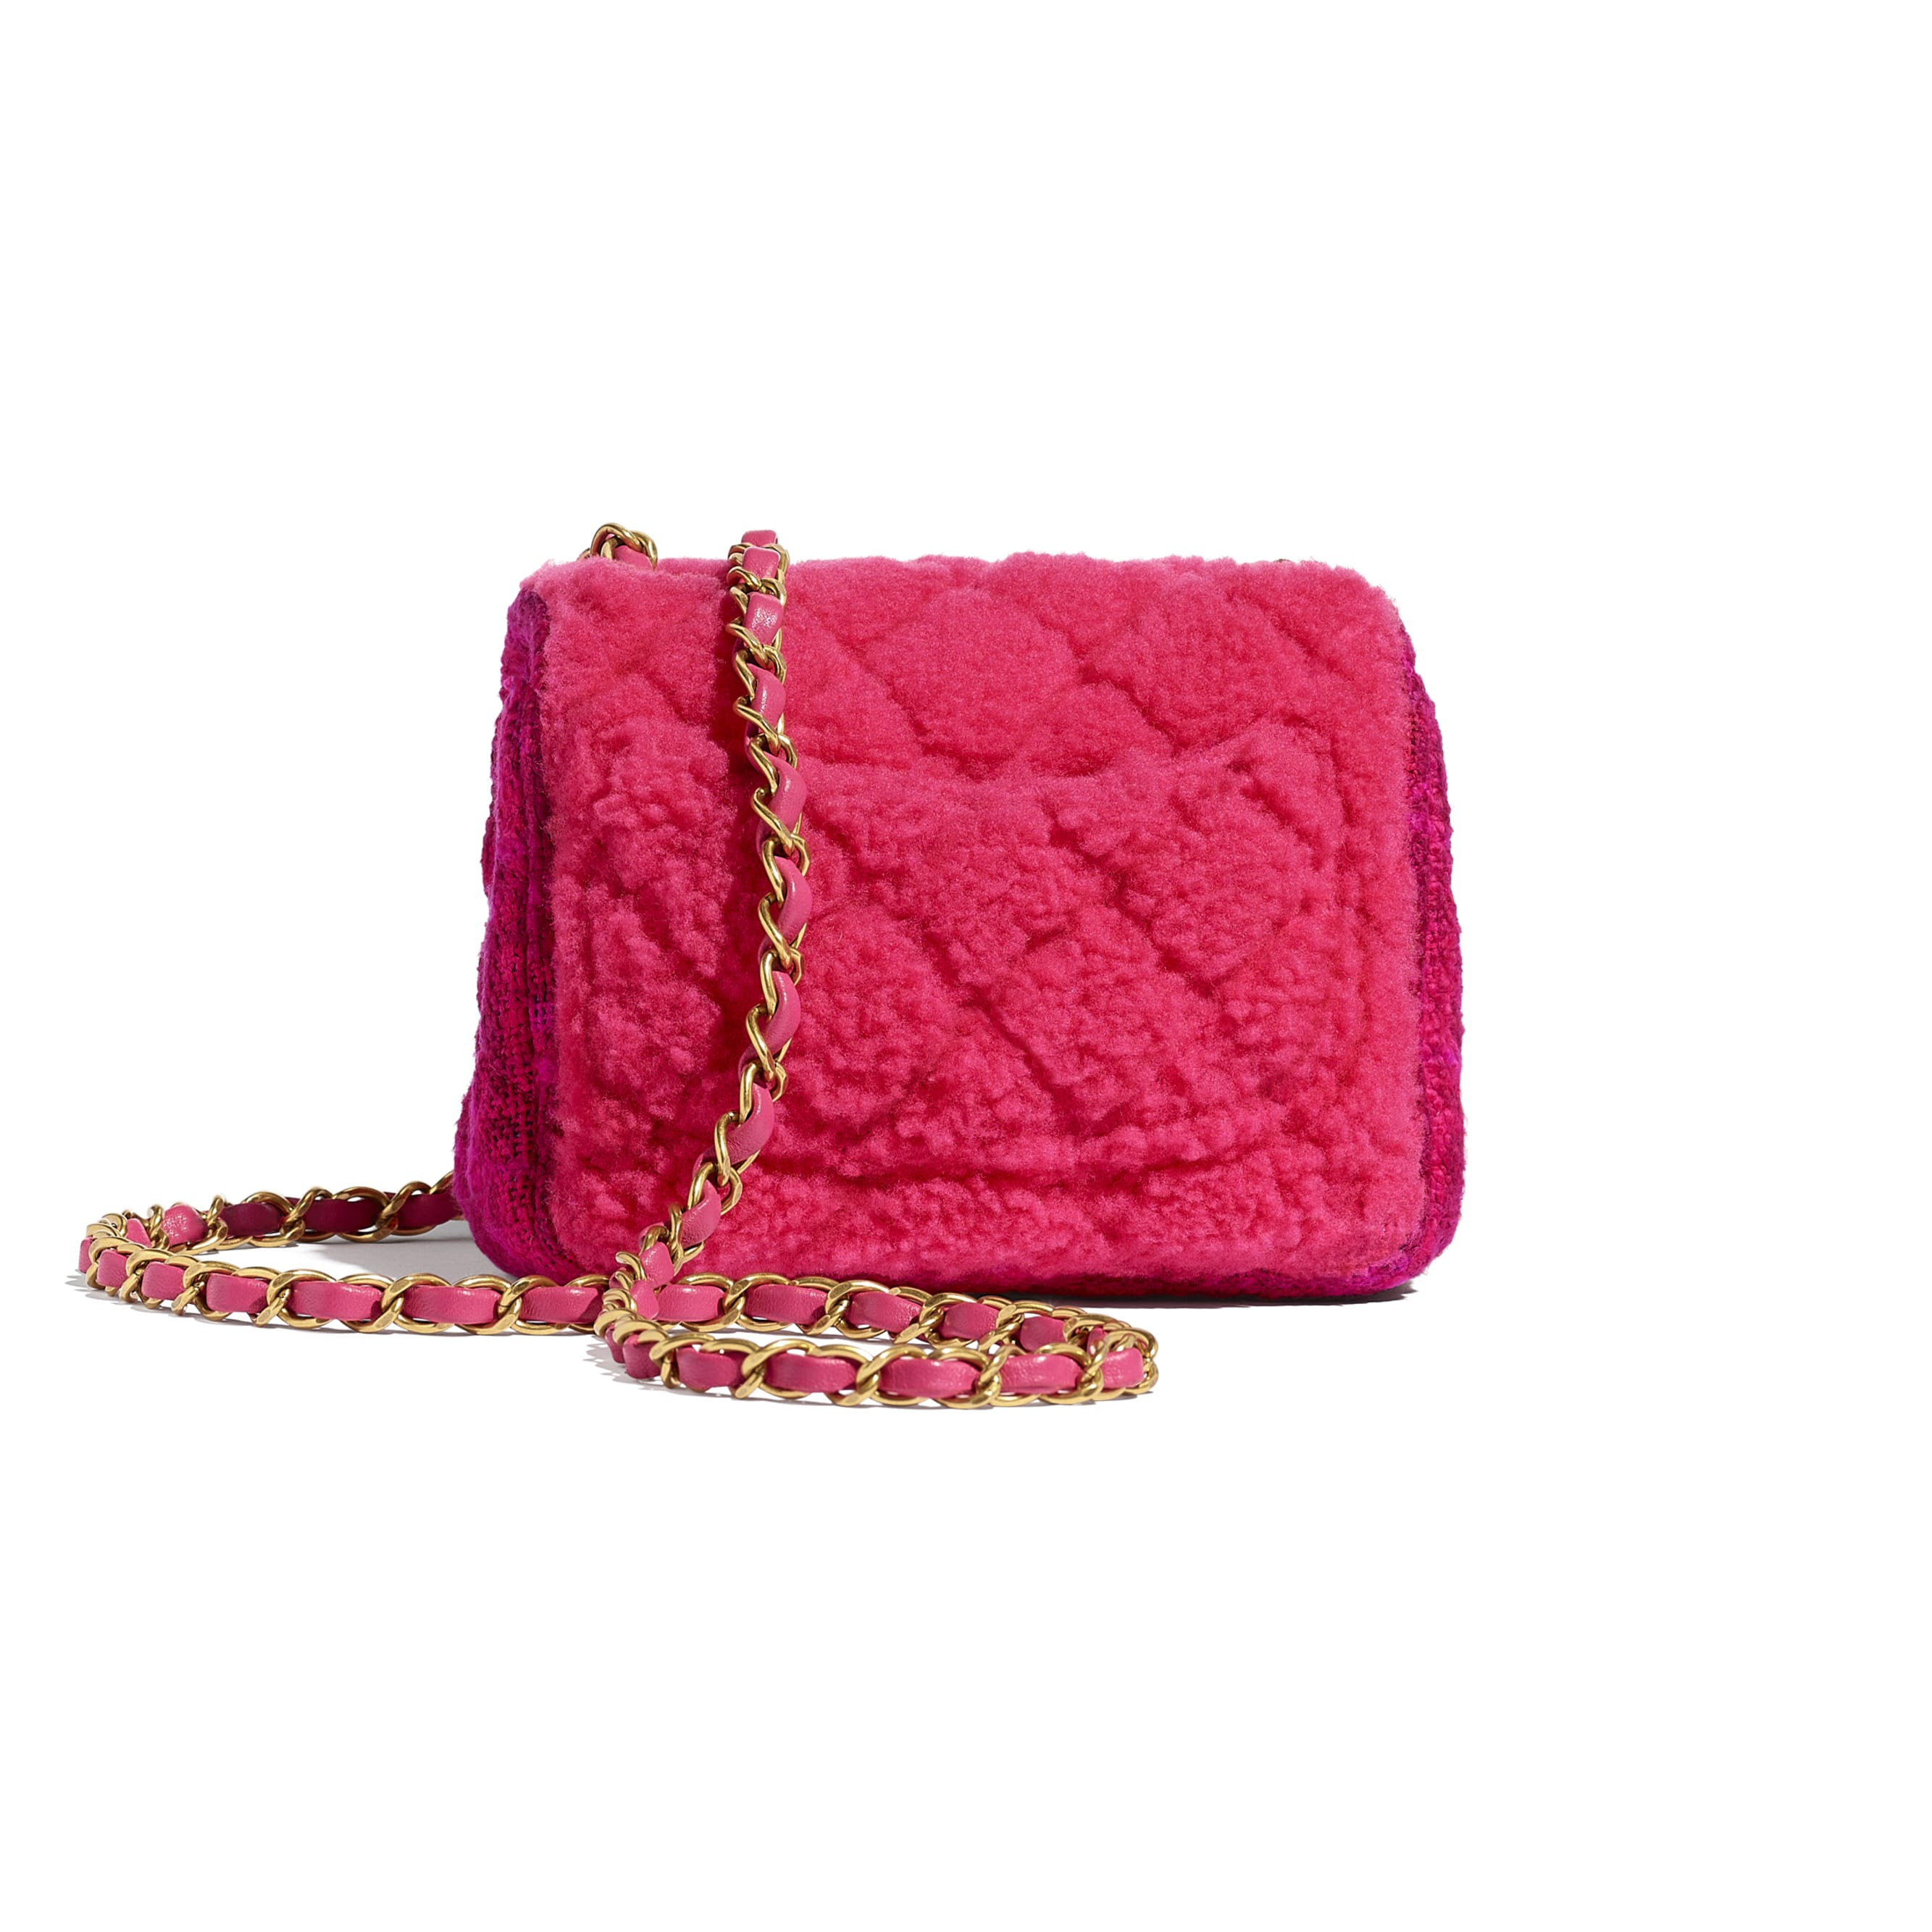 Small Flap Bag - Pink, Burgundy & Red - Shearling Sheepskin, Tweed & Gold-Tone Metal - CHANEL - Alternative view - see standard sized version